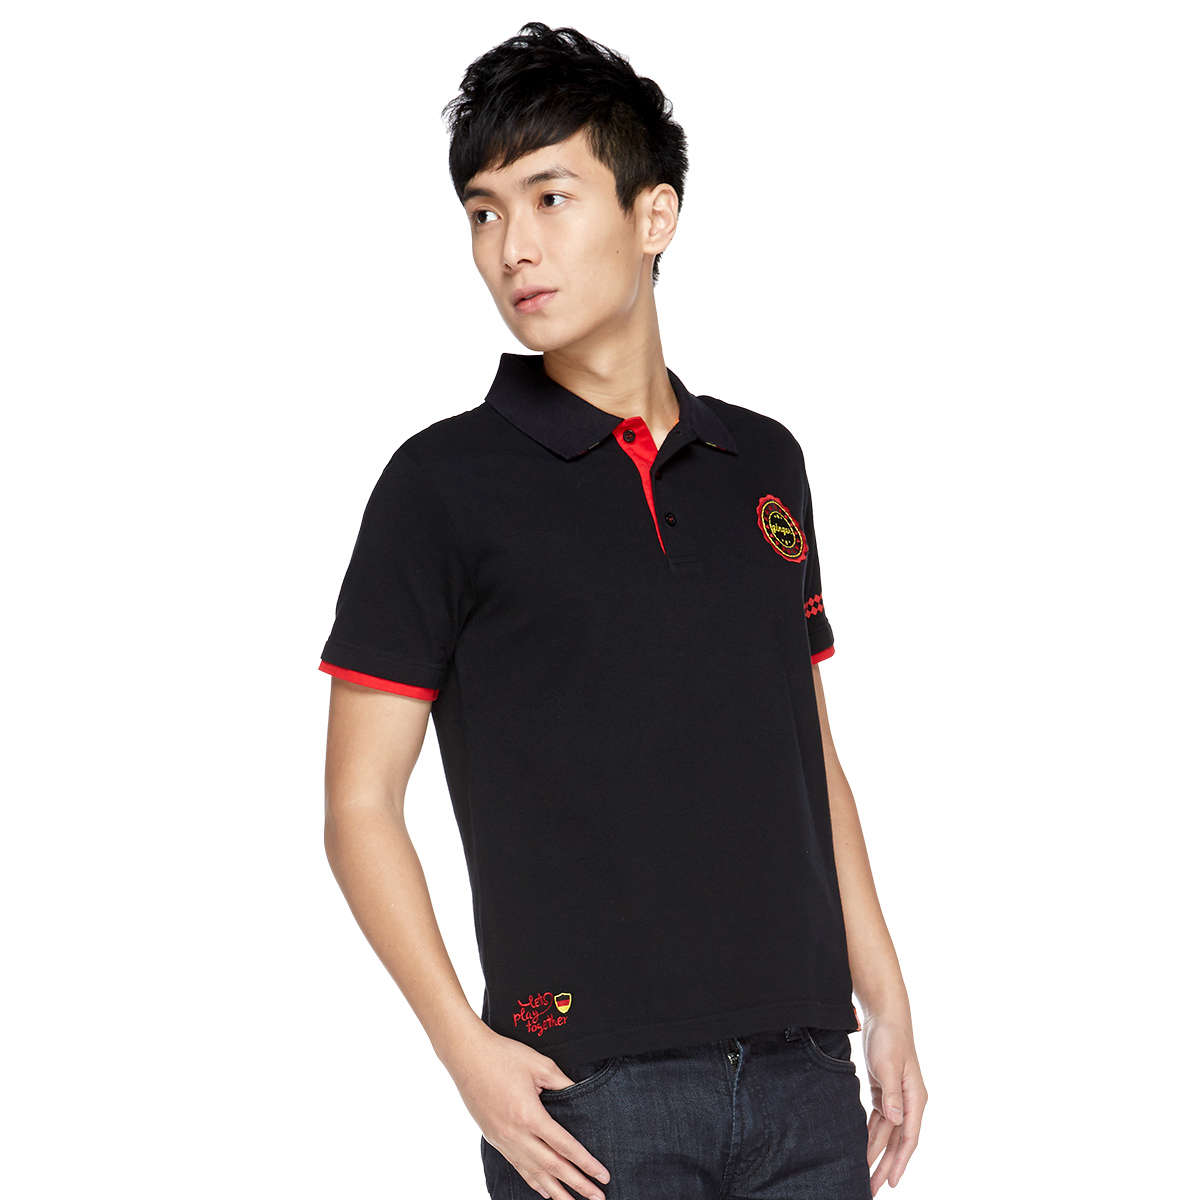 Lets play together (Germany) Unisex Polo Tee